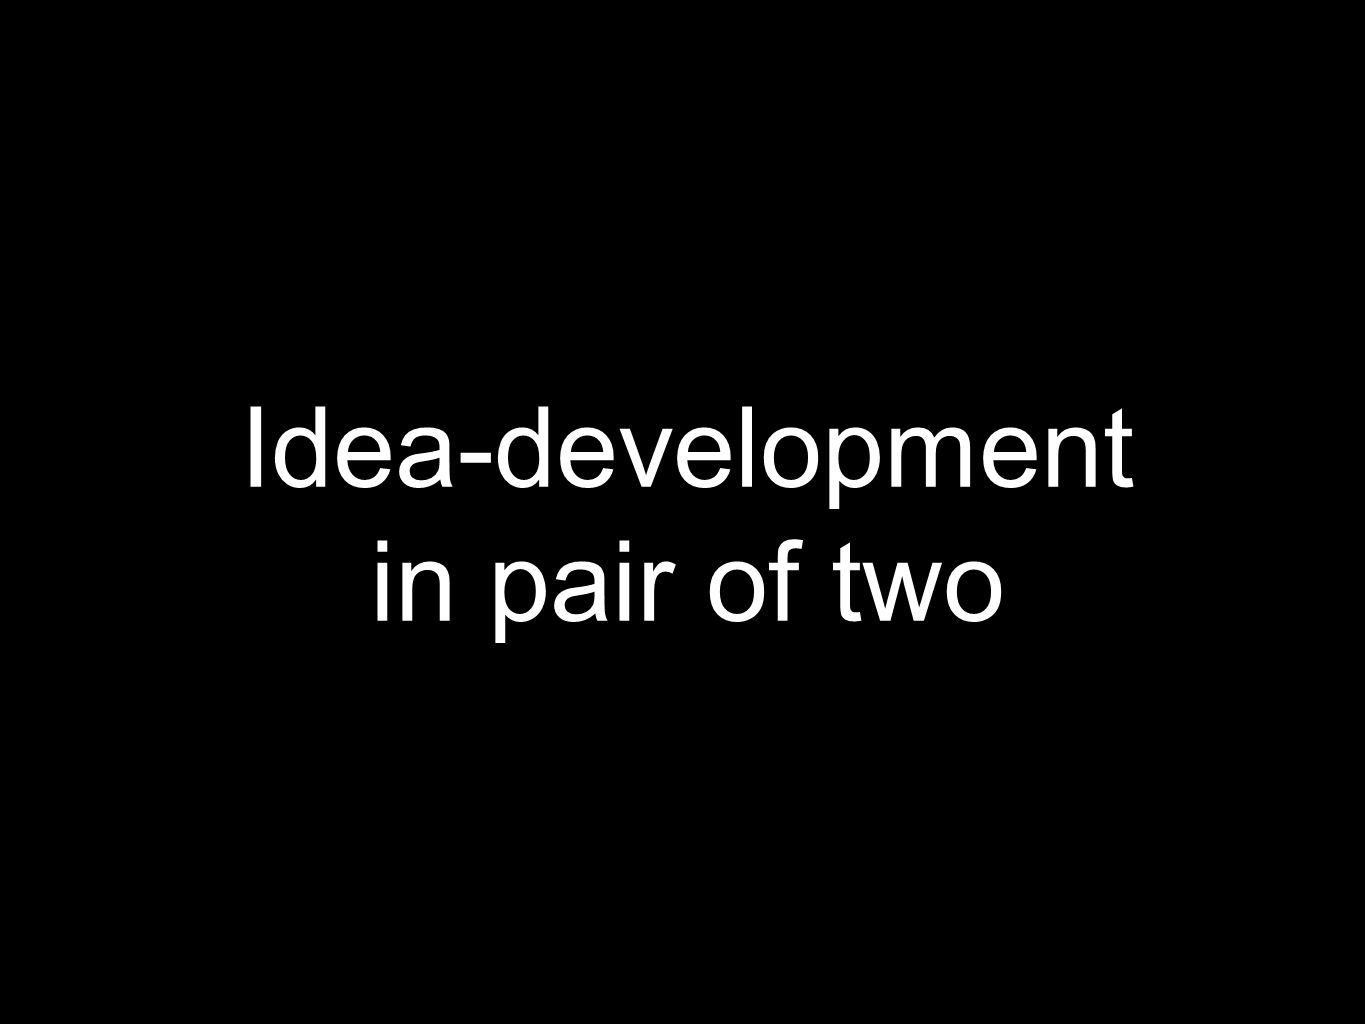 Idea-development in pair of two